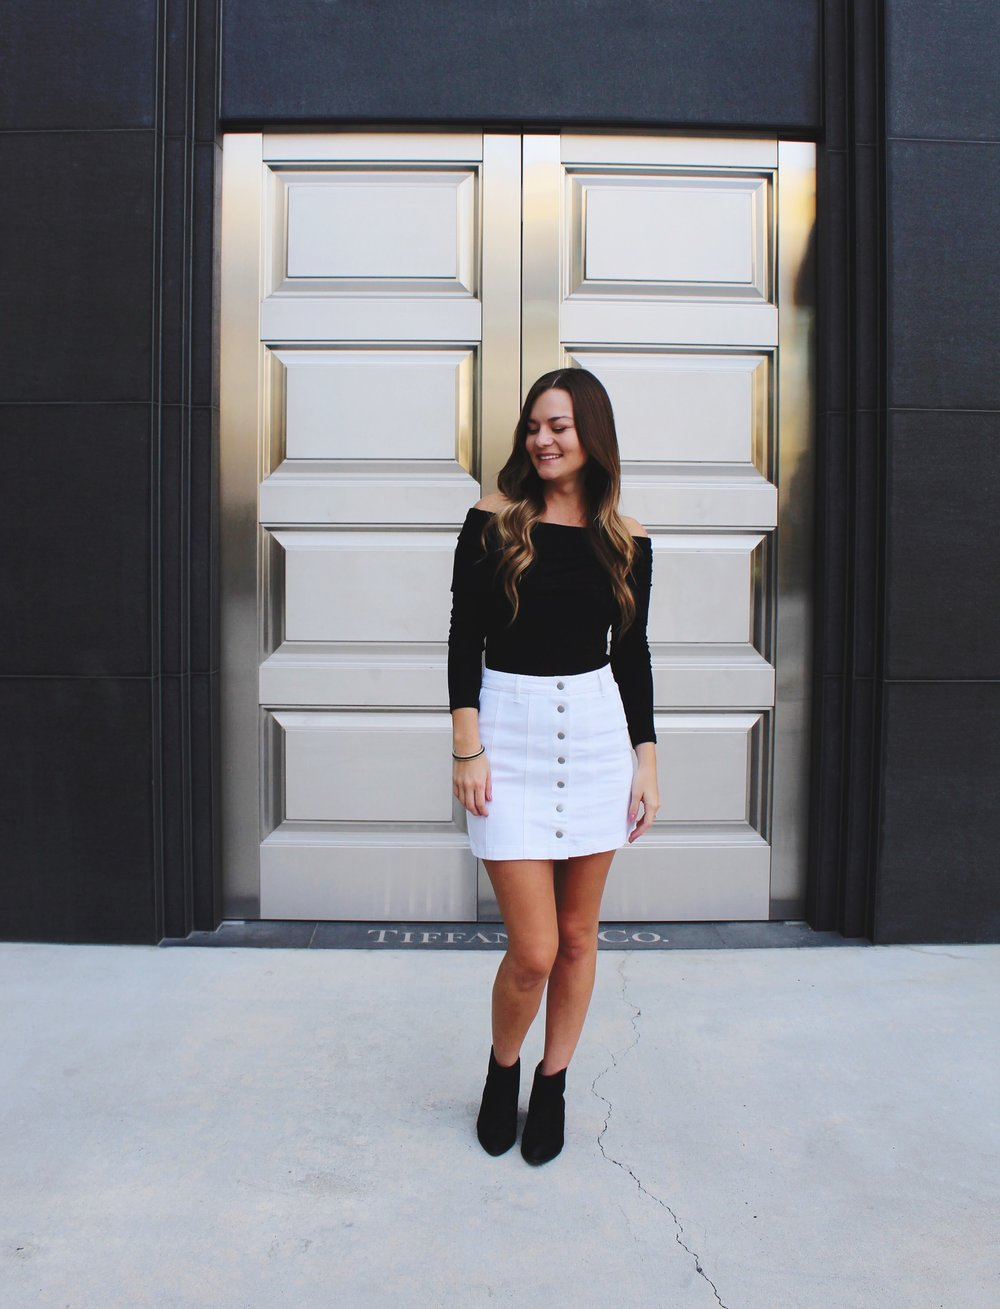 Black Off the Shoulder Forever 21 Blouse/ White Front Button Mini Skirt/ Black Ankle Boots/ Tiffany & Co. Roseville Galleria Store front